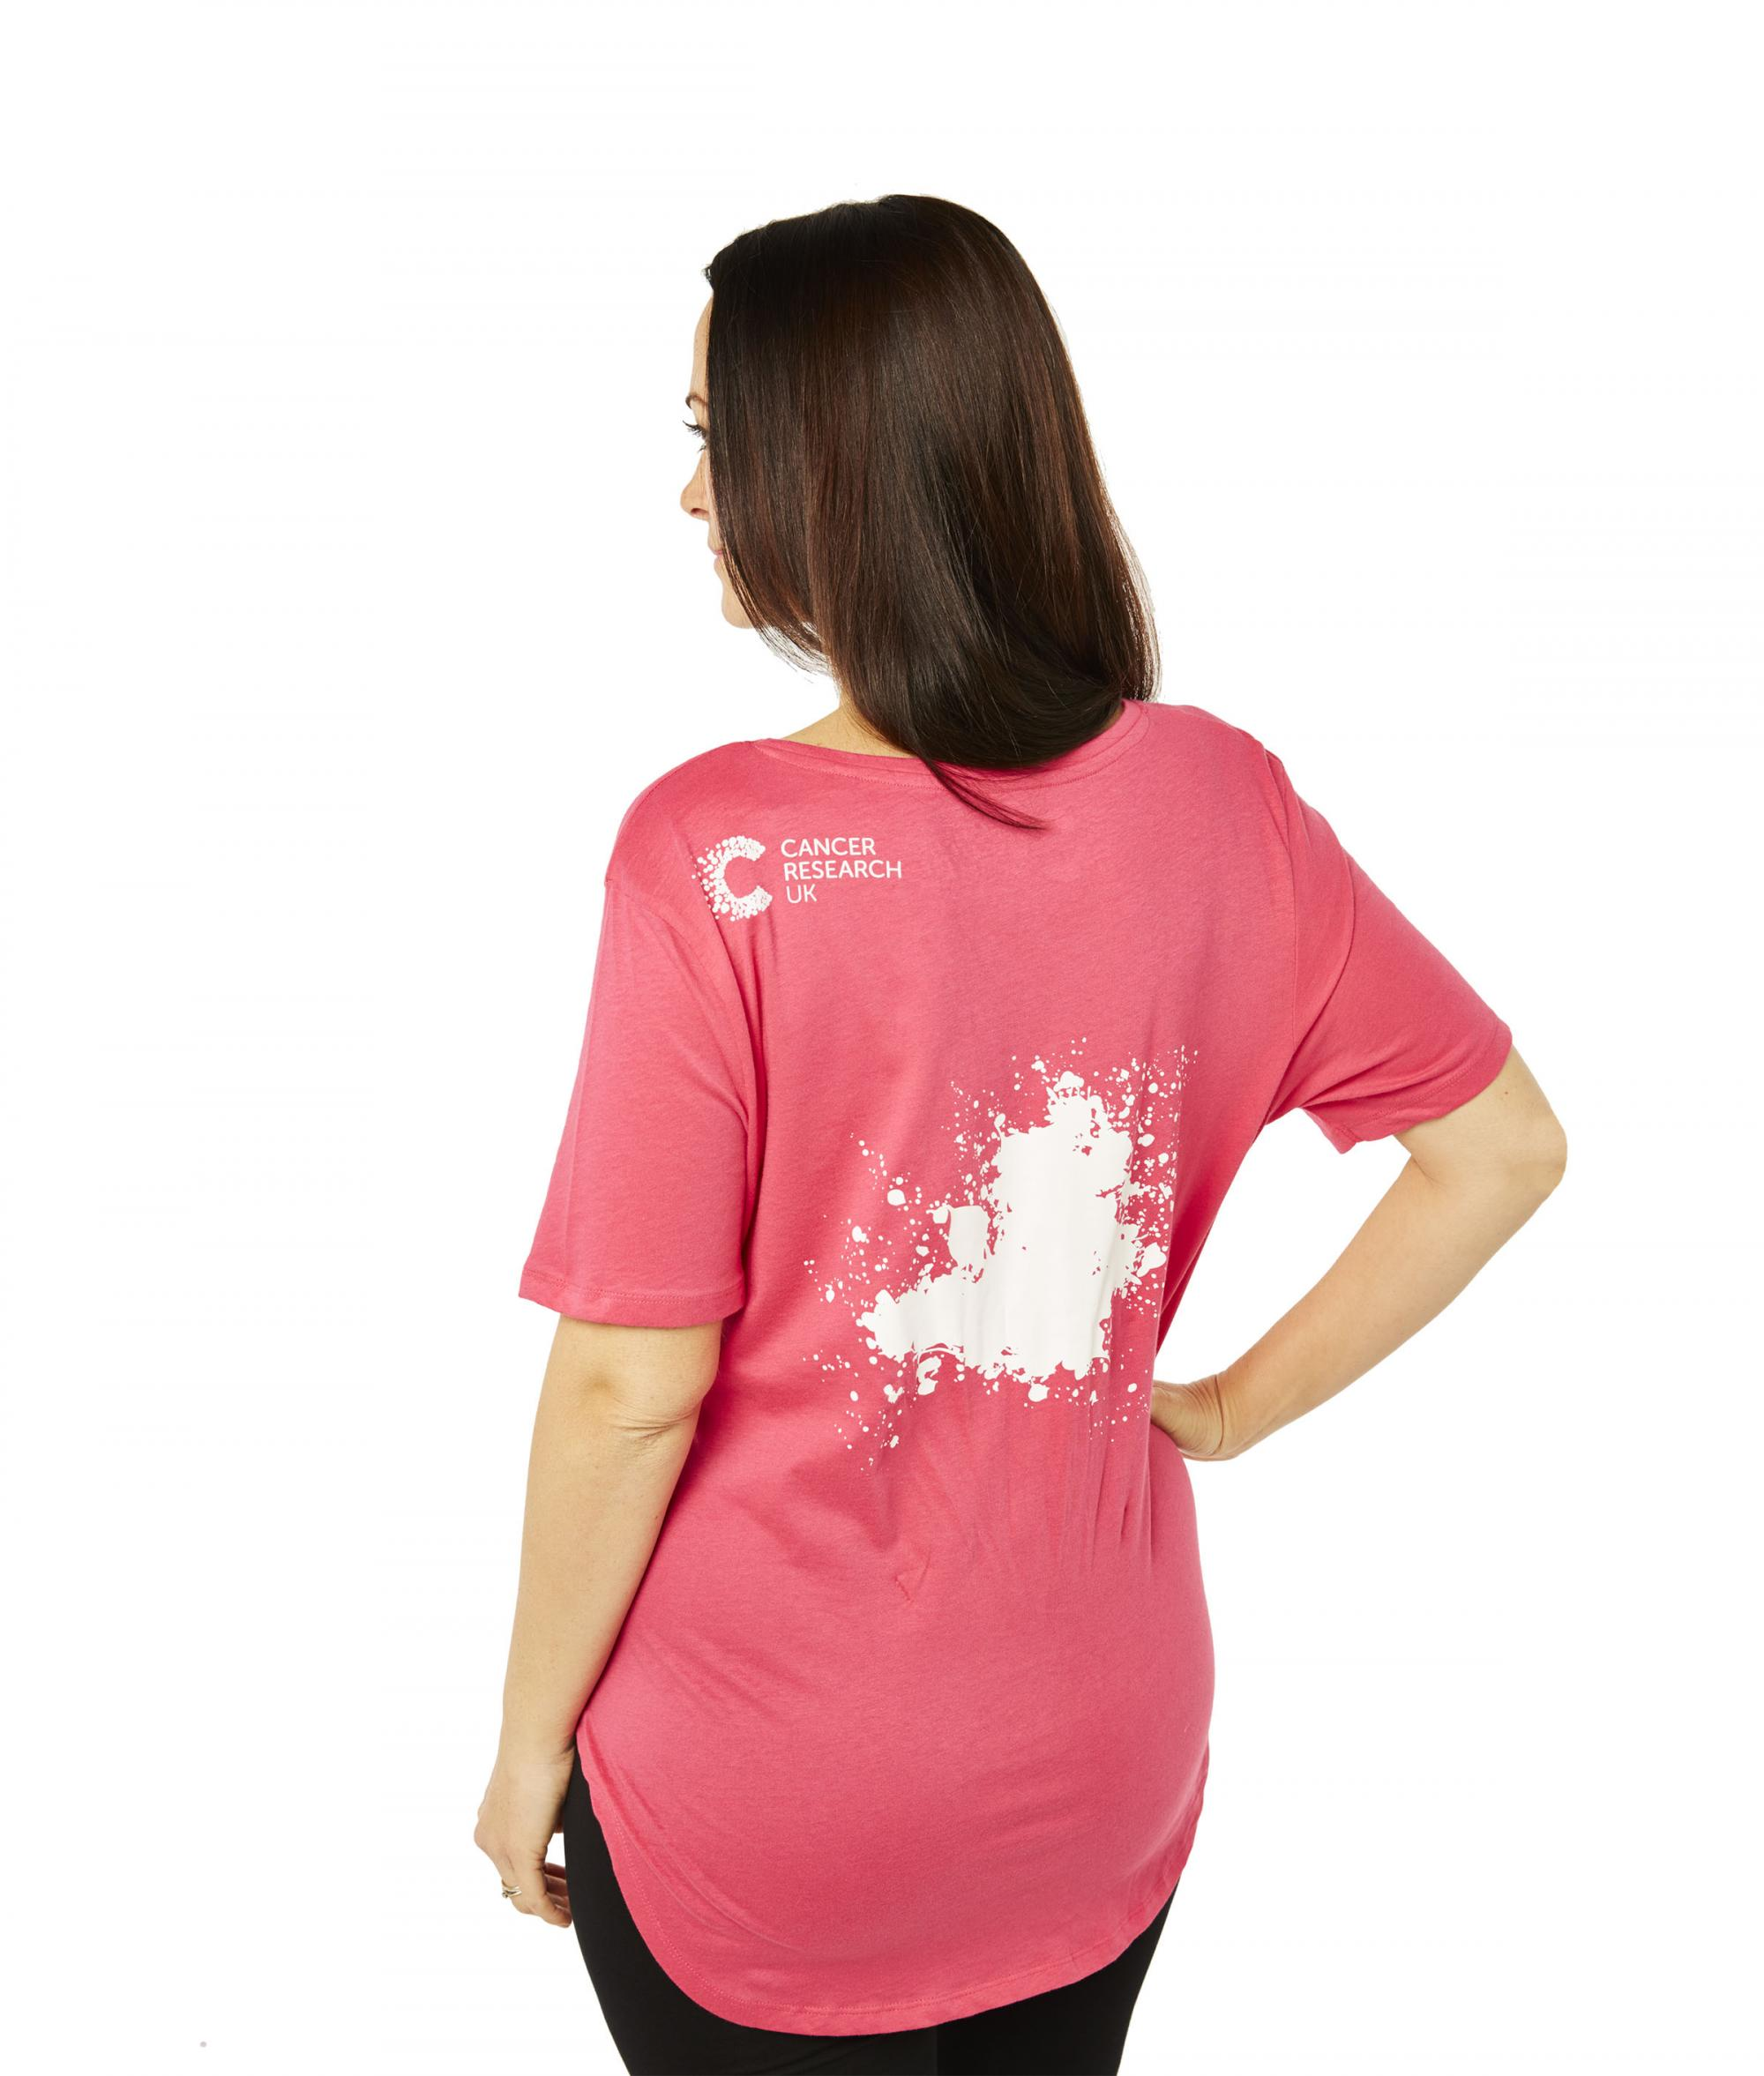 Its Tough Its Muddy Pink T Shirt Ideal for Pretty Mudder Event Charity Race